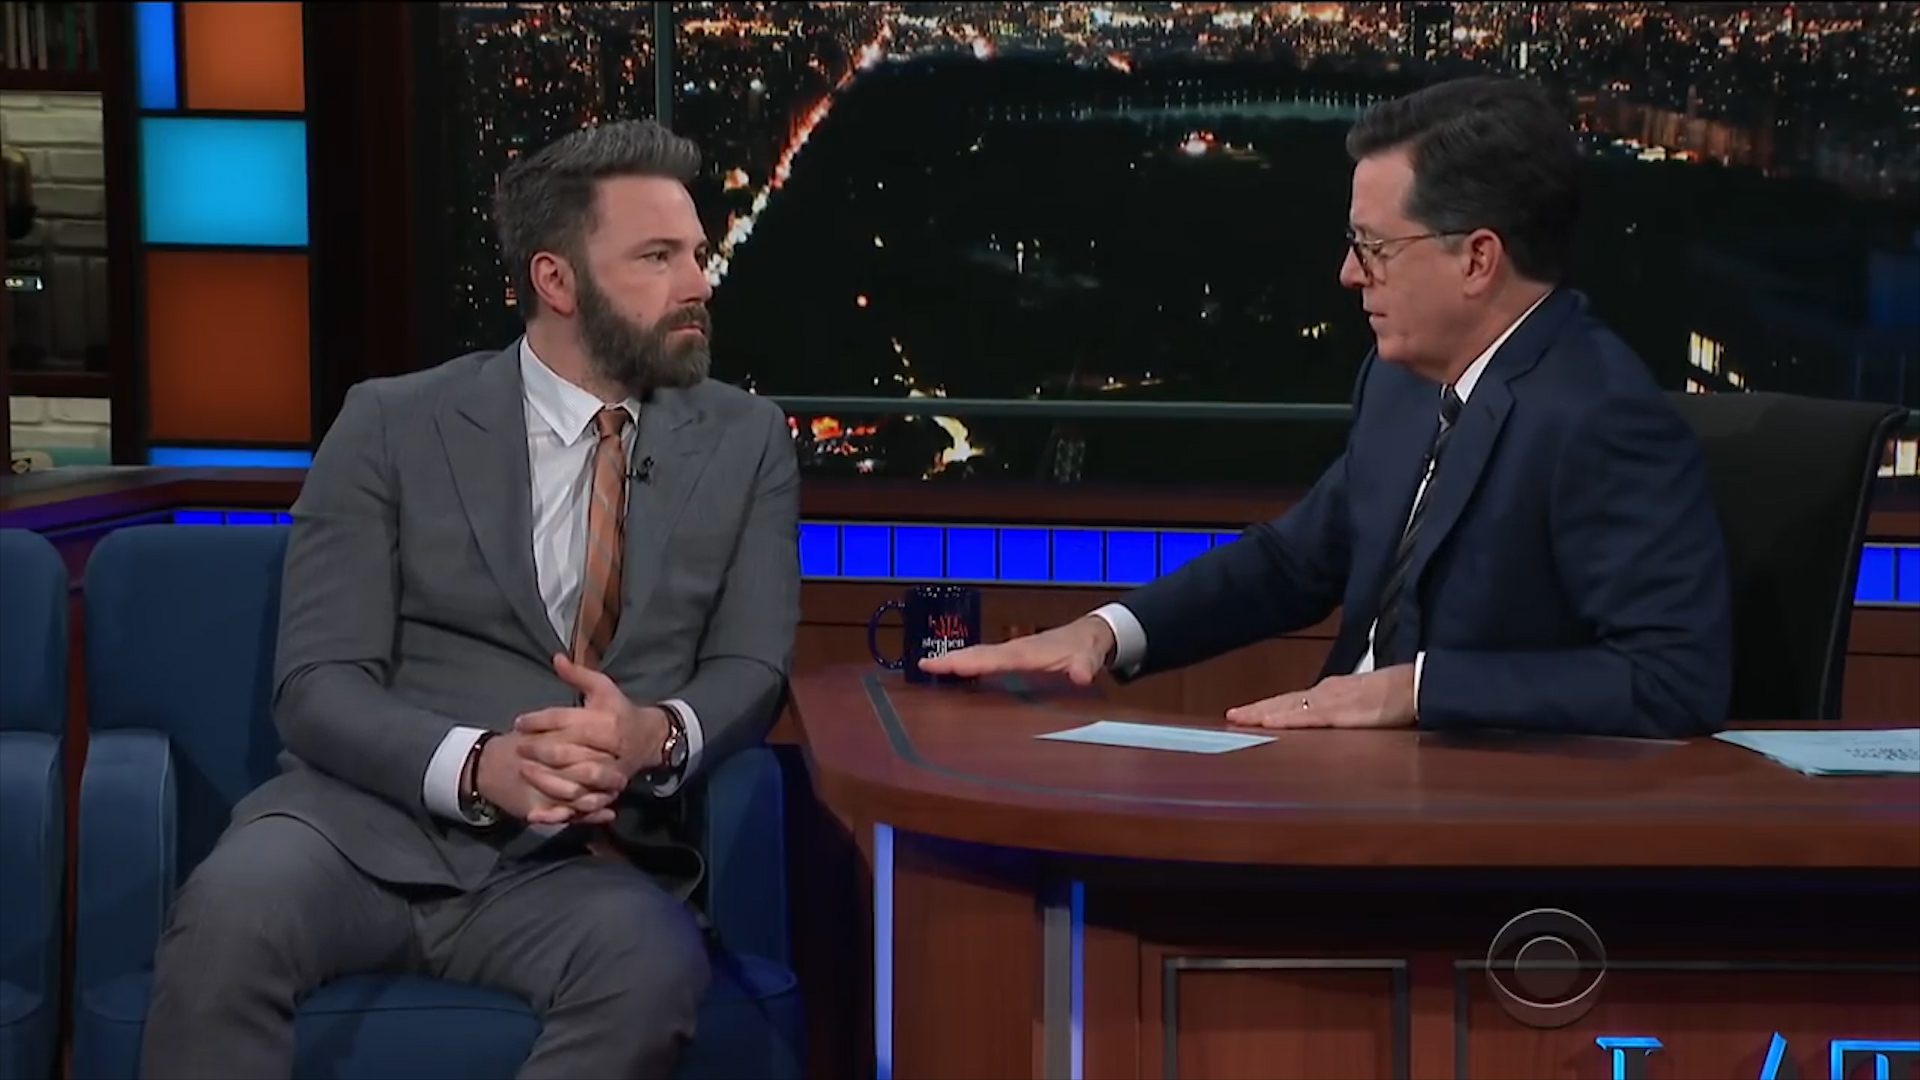 Stephen Colbert Pushes Ben Affleck on Sexual Harassment In a Tense Late Show Interview